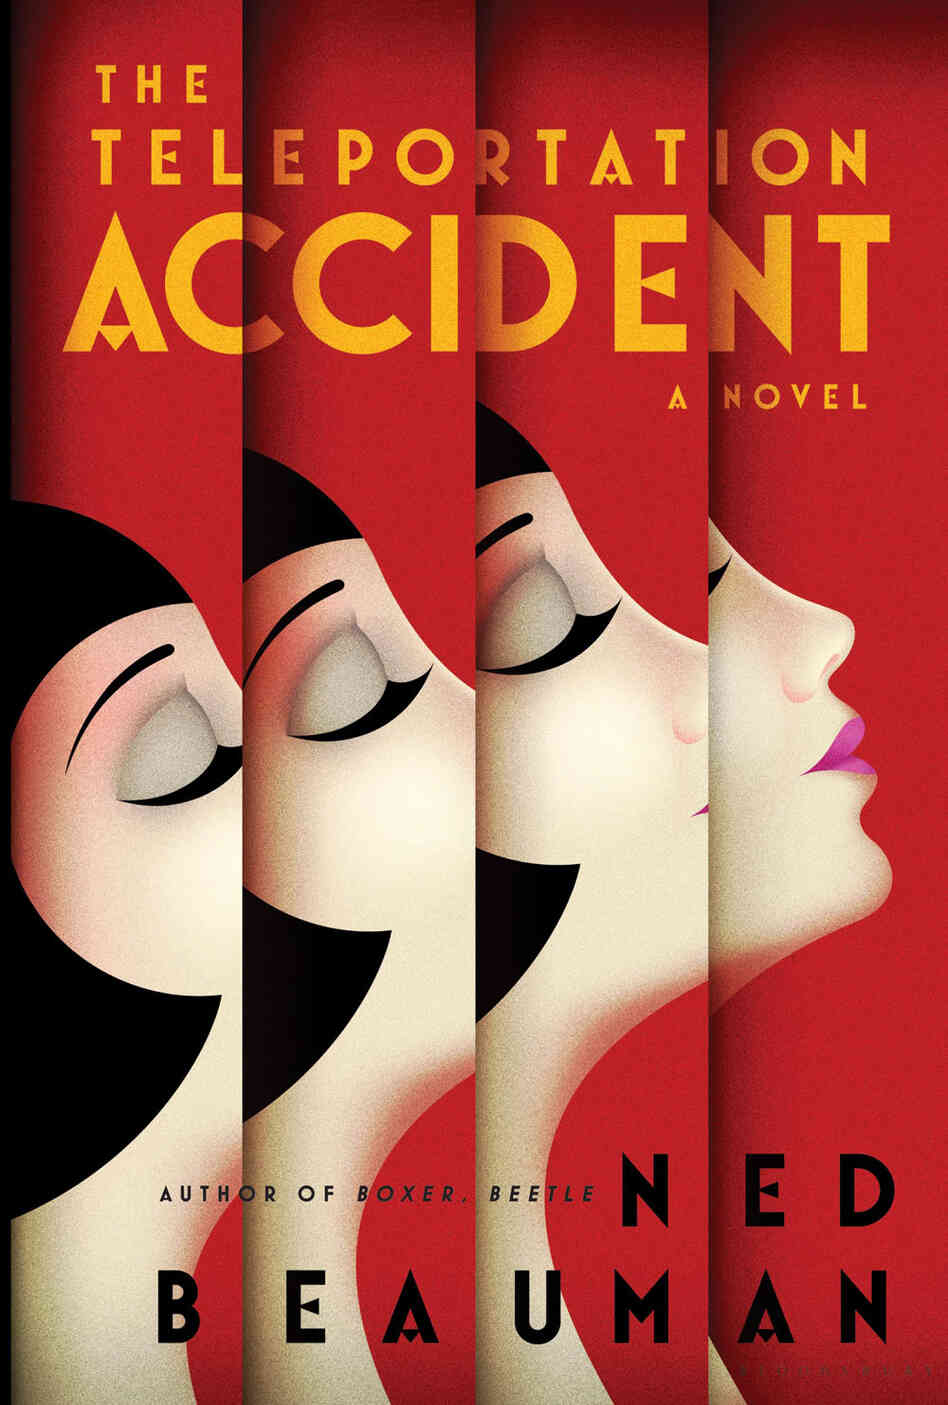 Book Cover Art History ~ Book review the teleportation accident by ned beauman npr